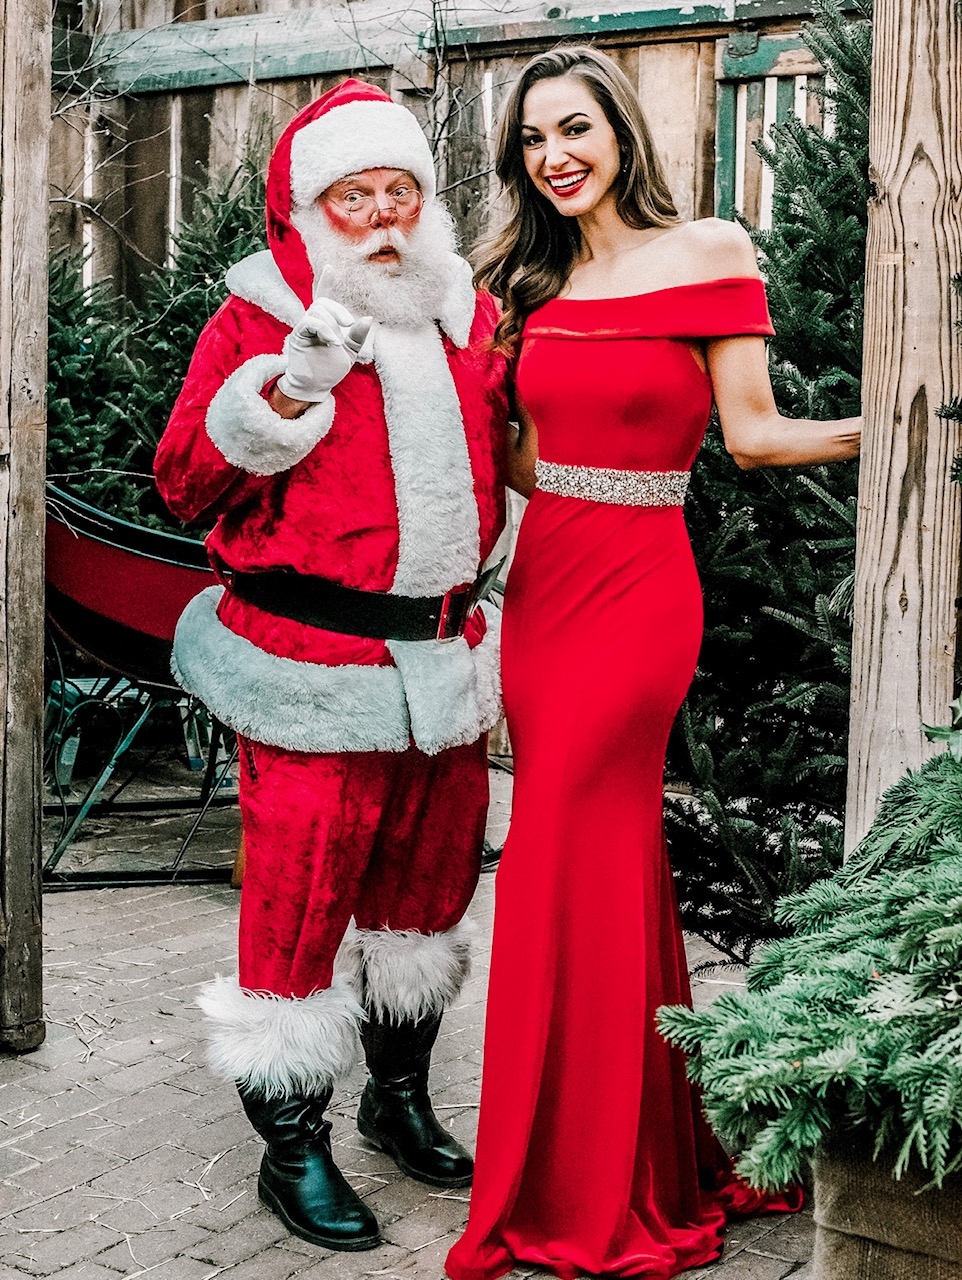 Maria montgomery - santa - miss priss gowns - hillenmeyer christmas shop